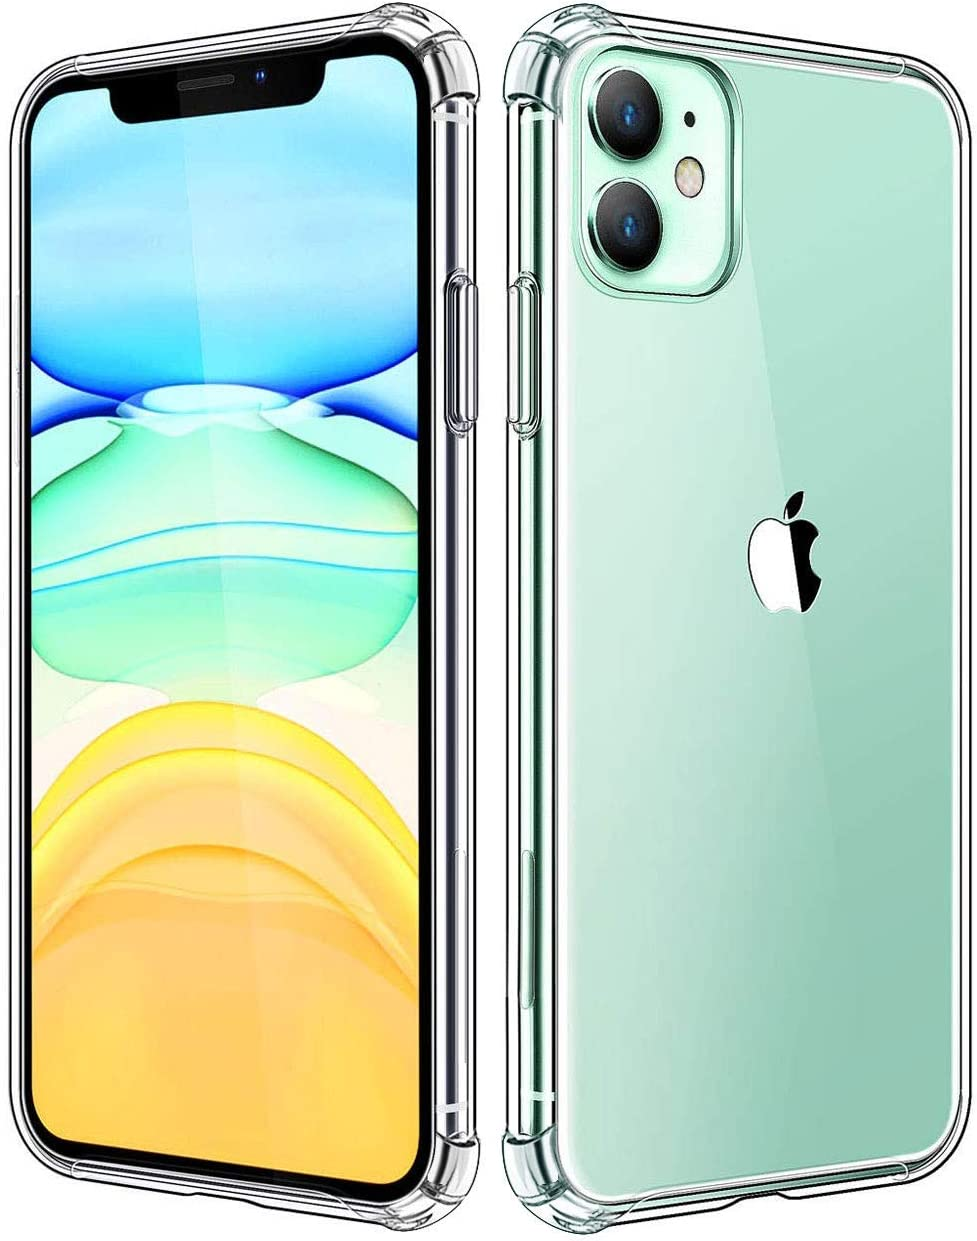 KUMEEK iPhone 11 Case, Clear Protective [Anti-Yellowing] Ultra Hybrid Flexible Slim Lightweight TPU Bumper Cases for 6.1 inch 2019 iPhone 11-Crystal Clear